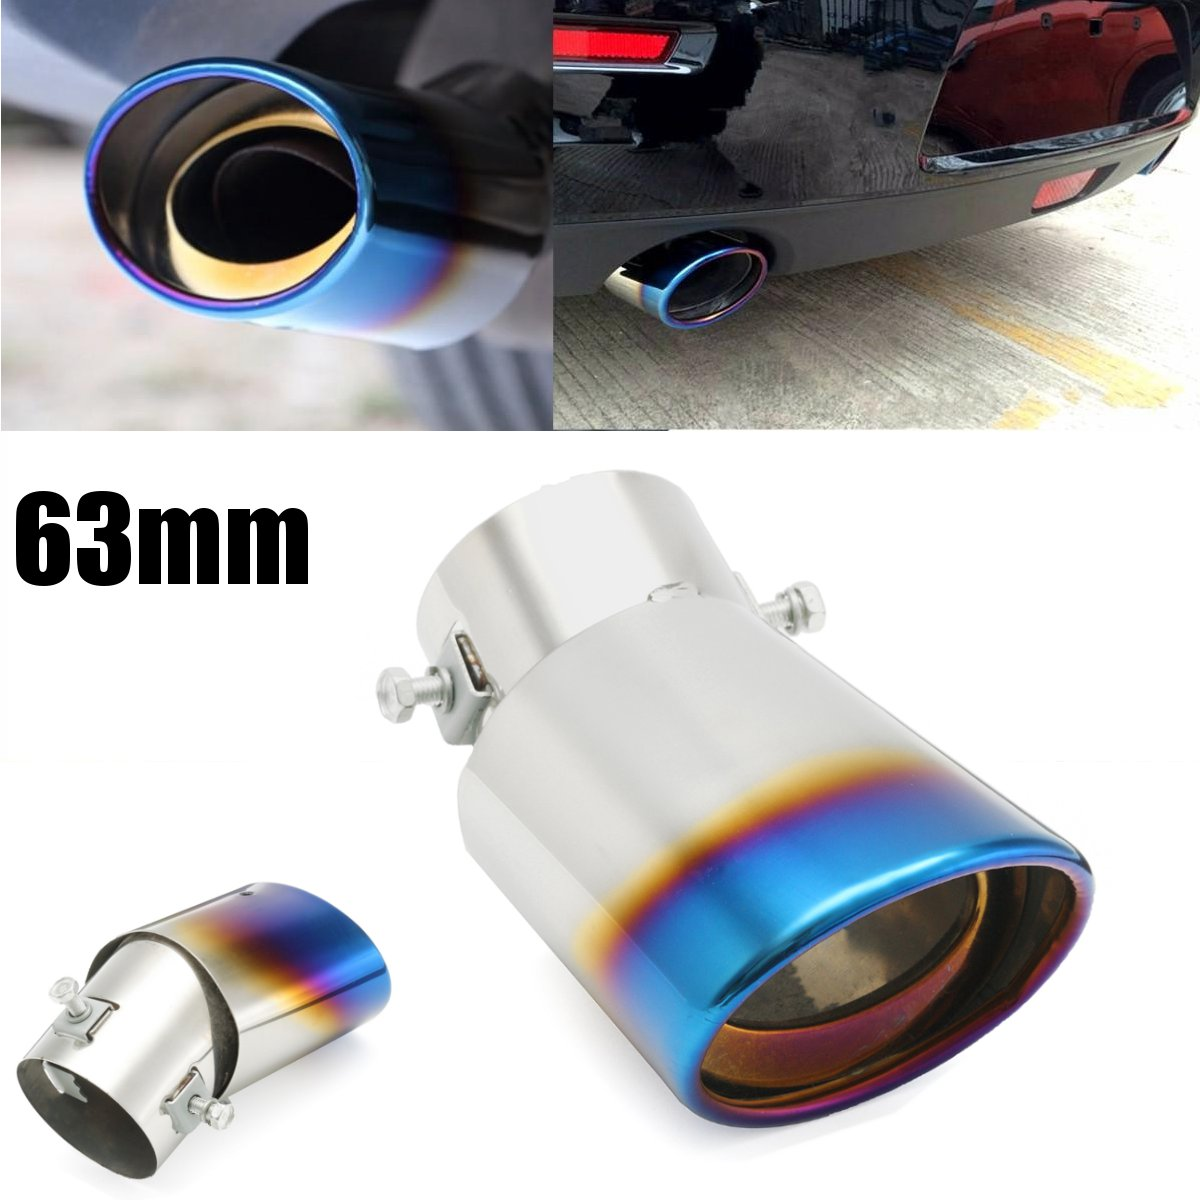 Buy 63mm Inlet Car Exhaust Muffler Tip Pipe Stainless Steel Chrome Grilled Blue